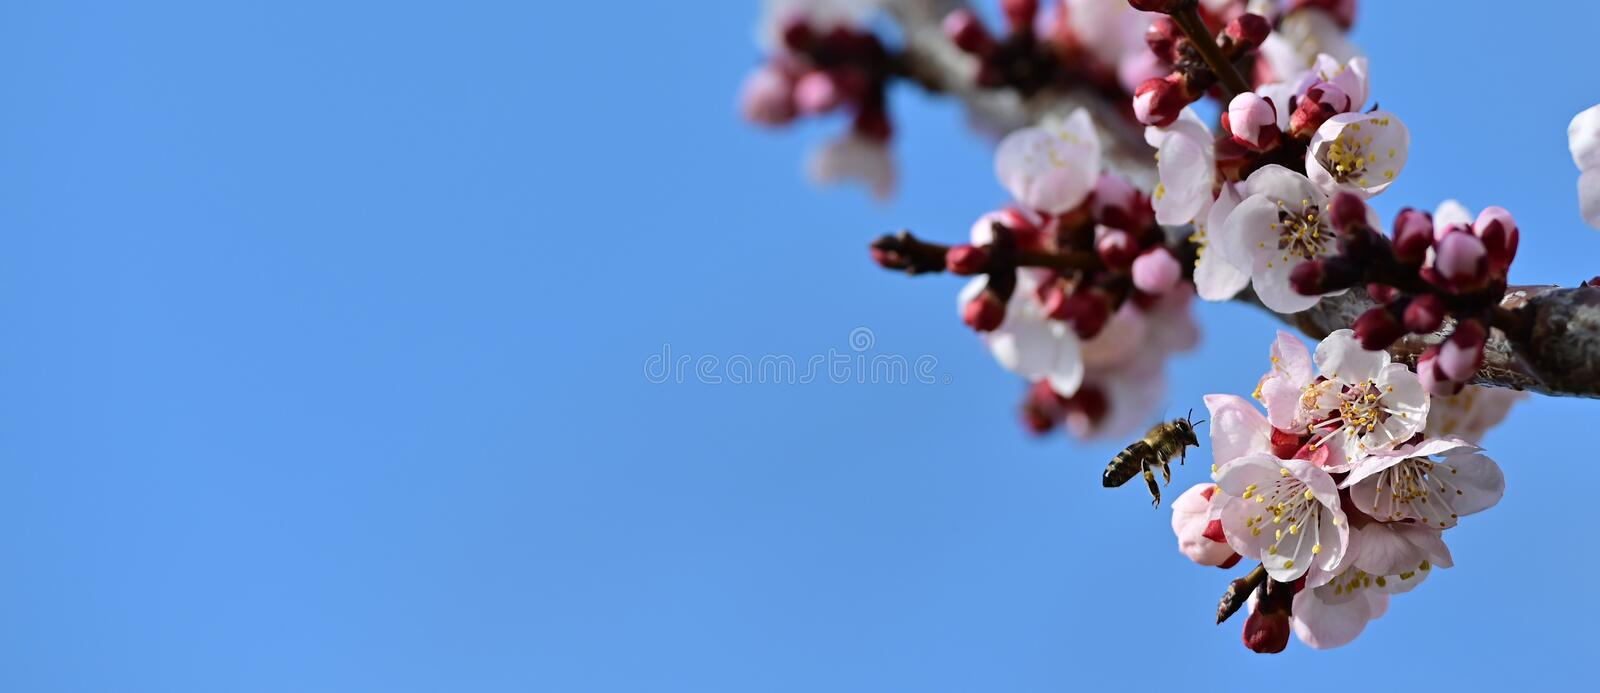 Honey bee polinate apricot blossom in early spring over vibrant blue sky background royalty free stock image